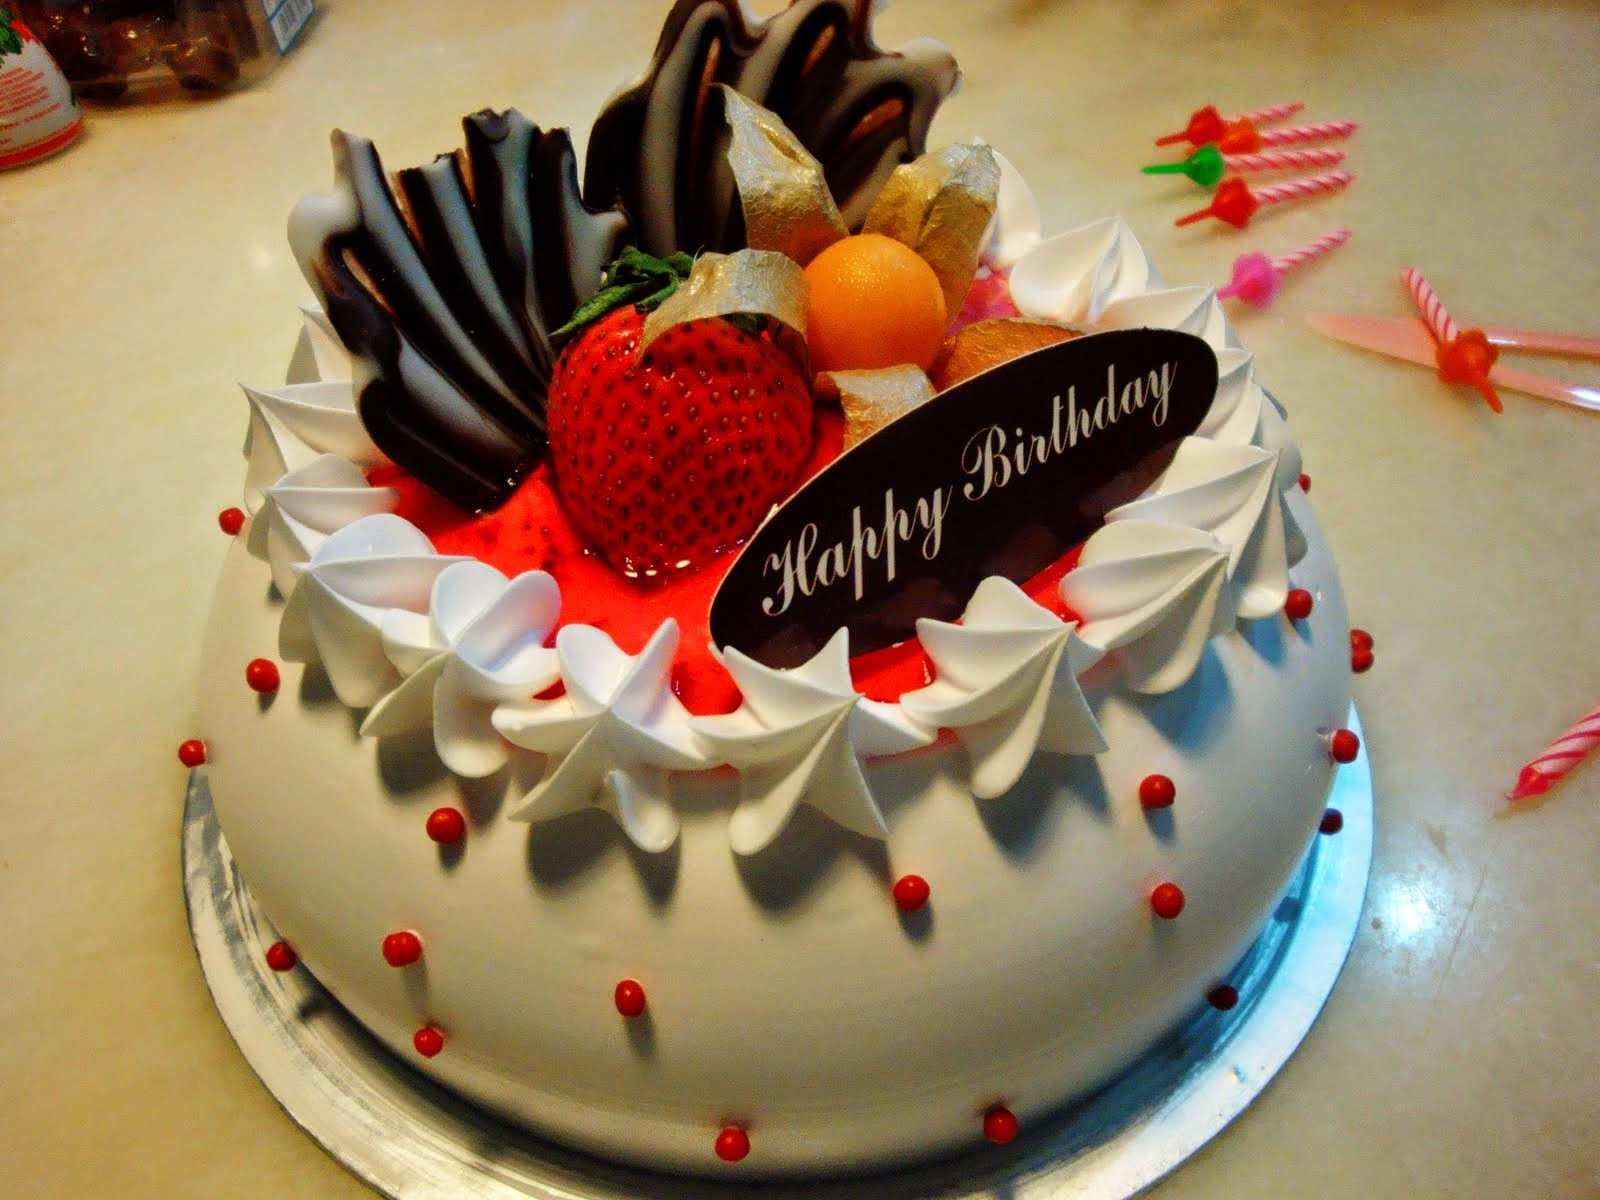 Best ideas about Happy Birthday Cake Pictures . Save or Pin HD BIRTHDAY WALLPAPER Birthday cakes Now.